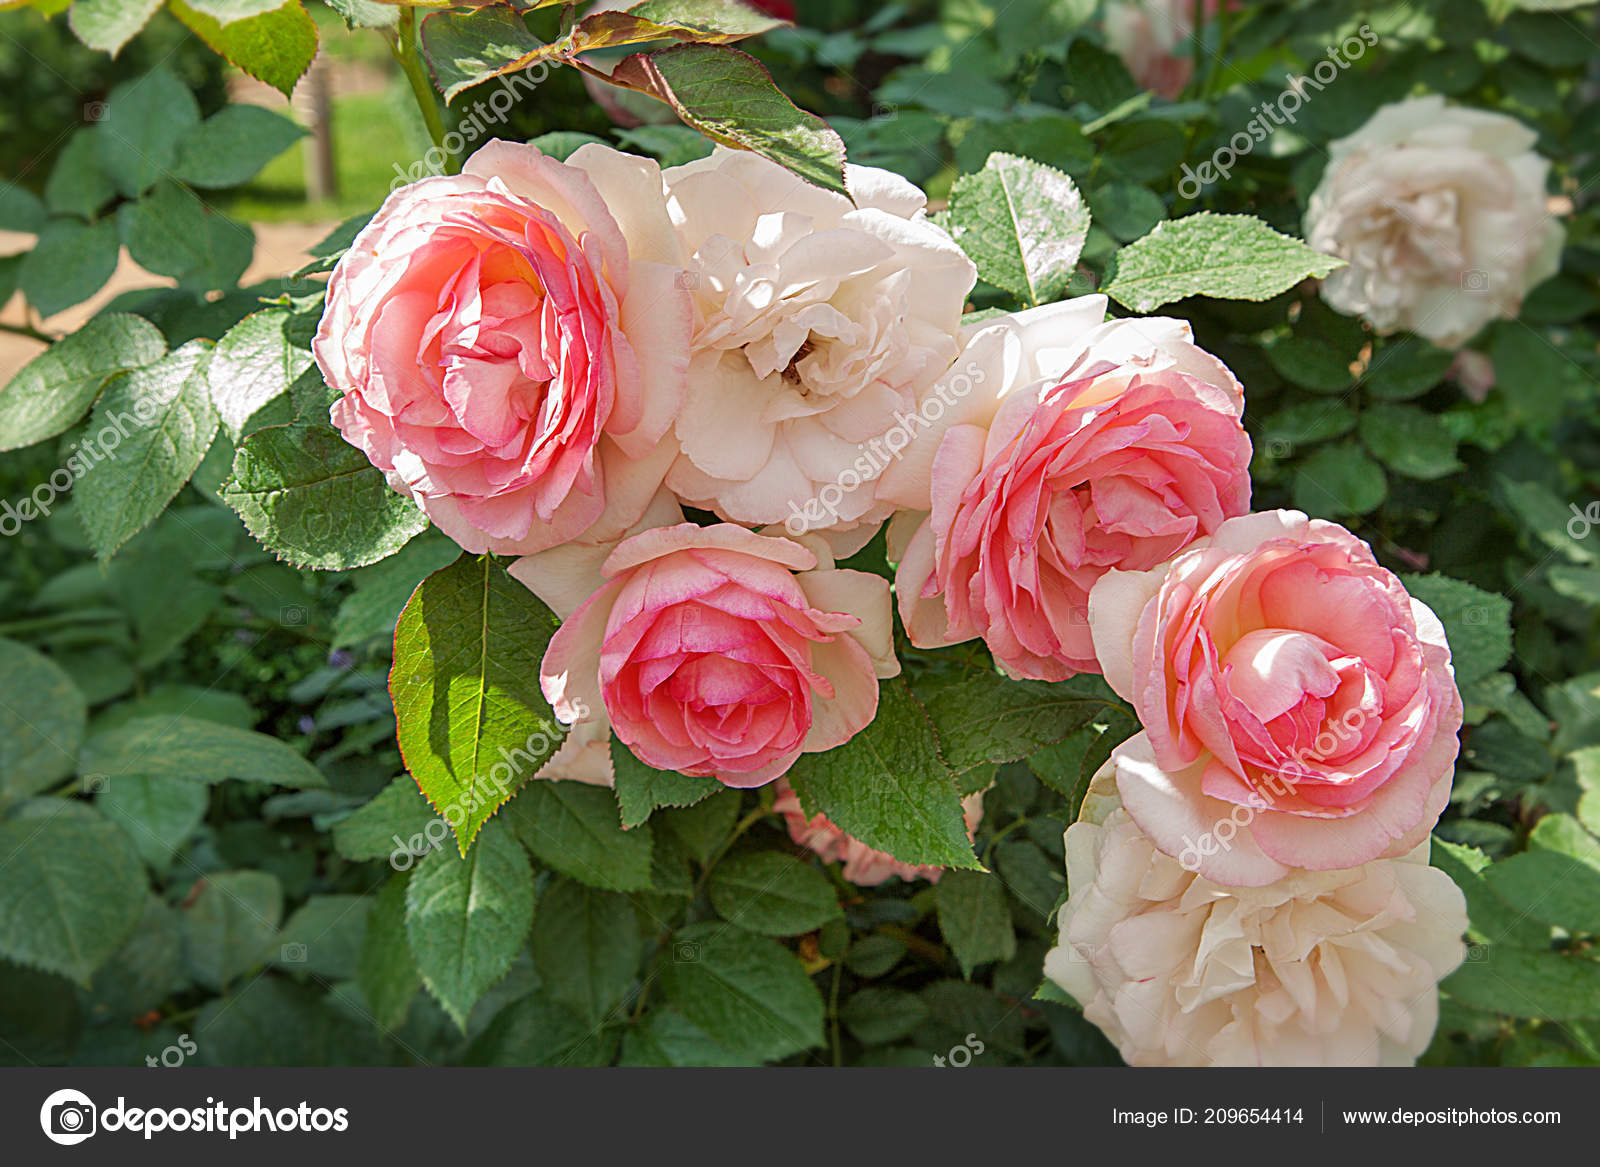 Beautiful White Pink Roses Garden Cluster Flowers Leaves Illuminated